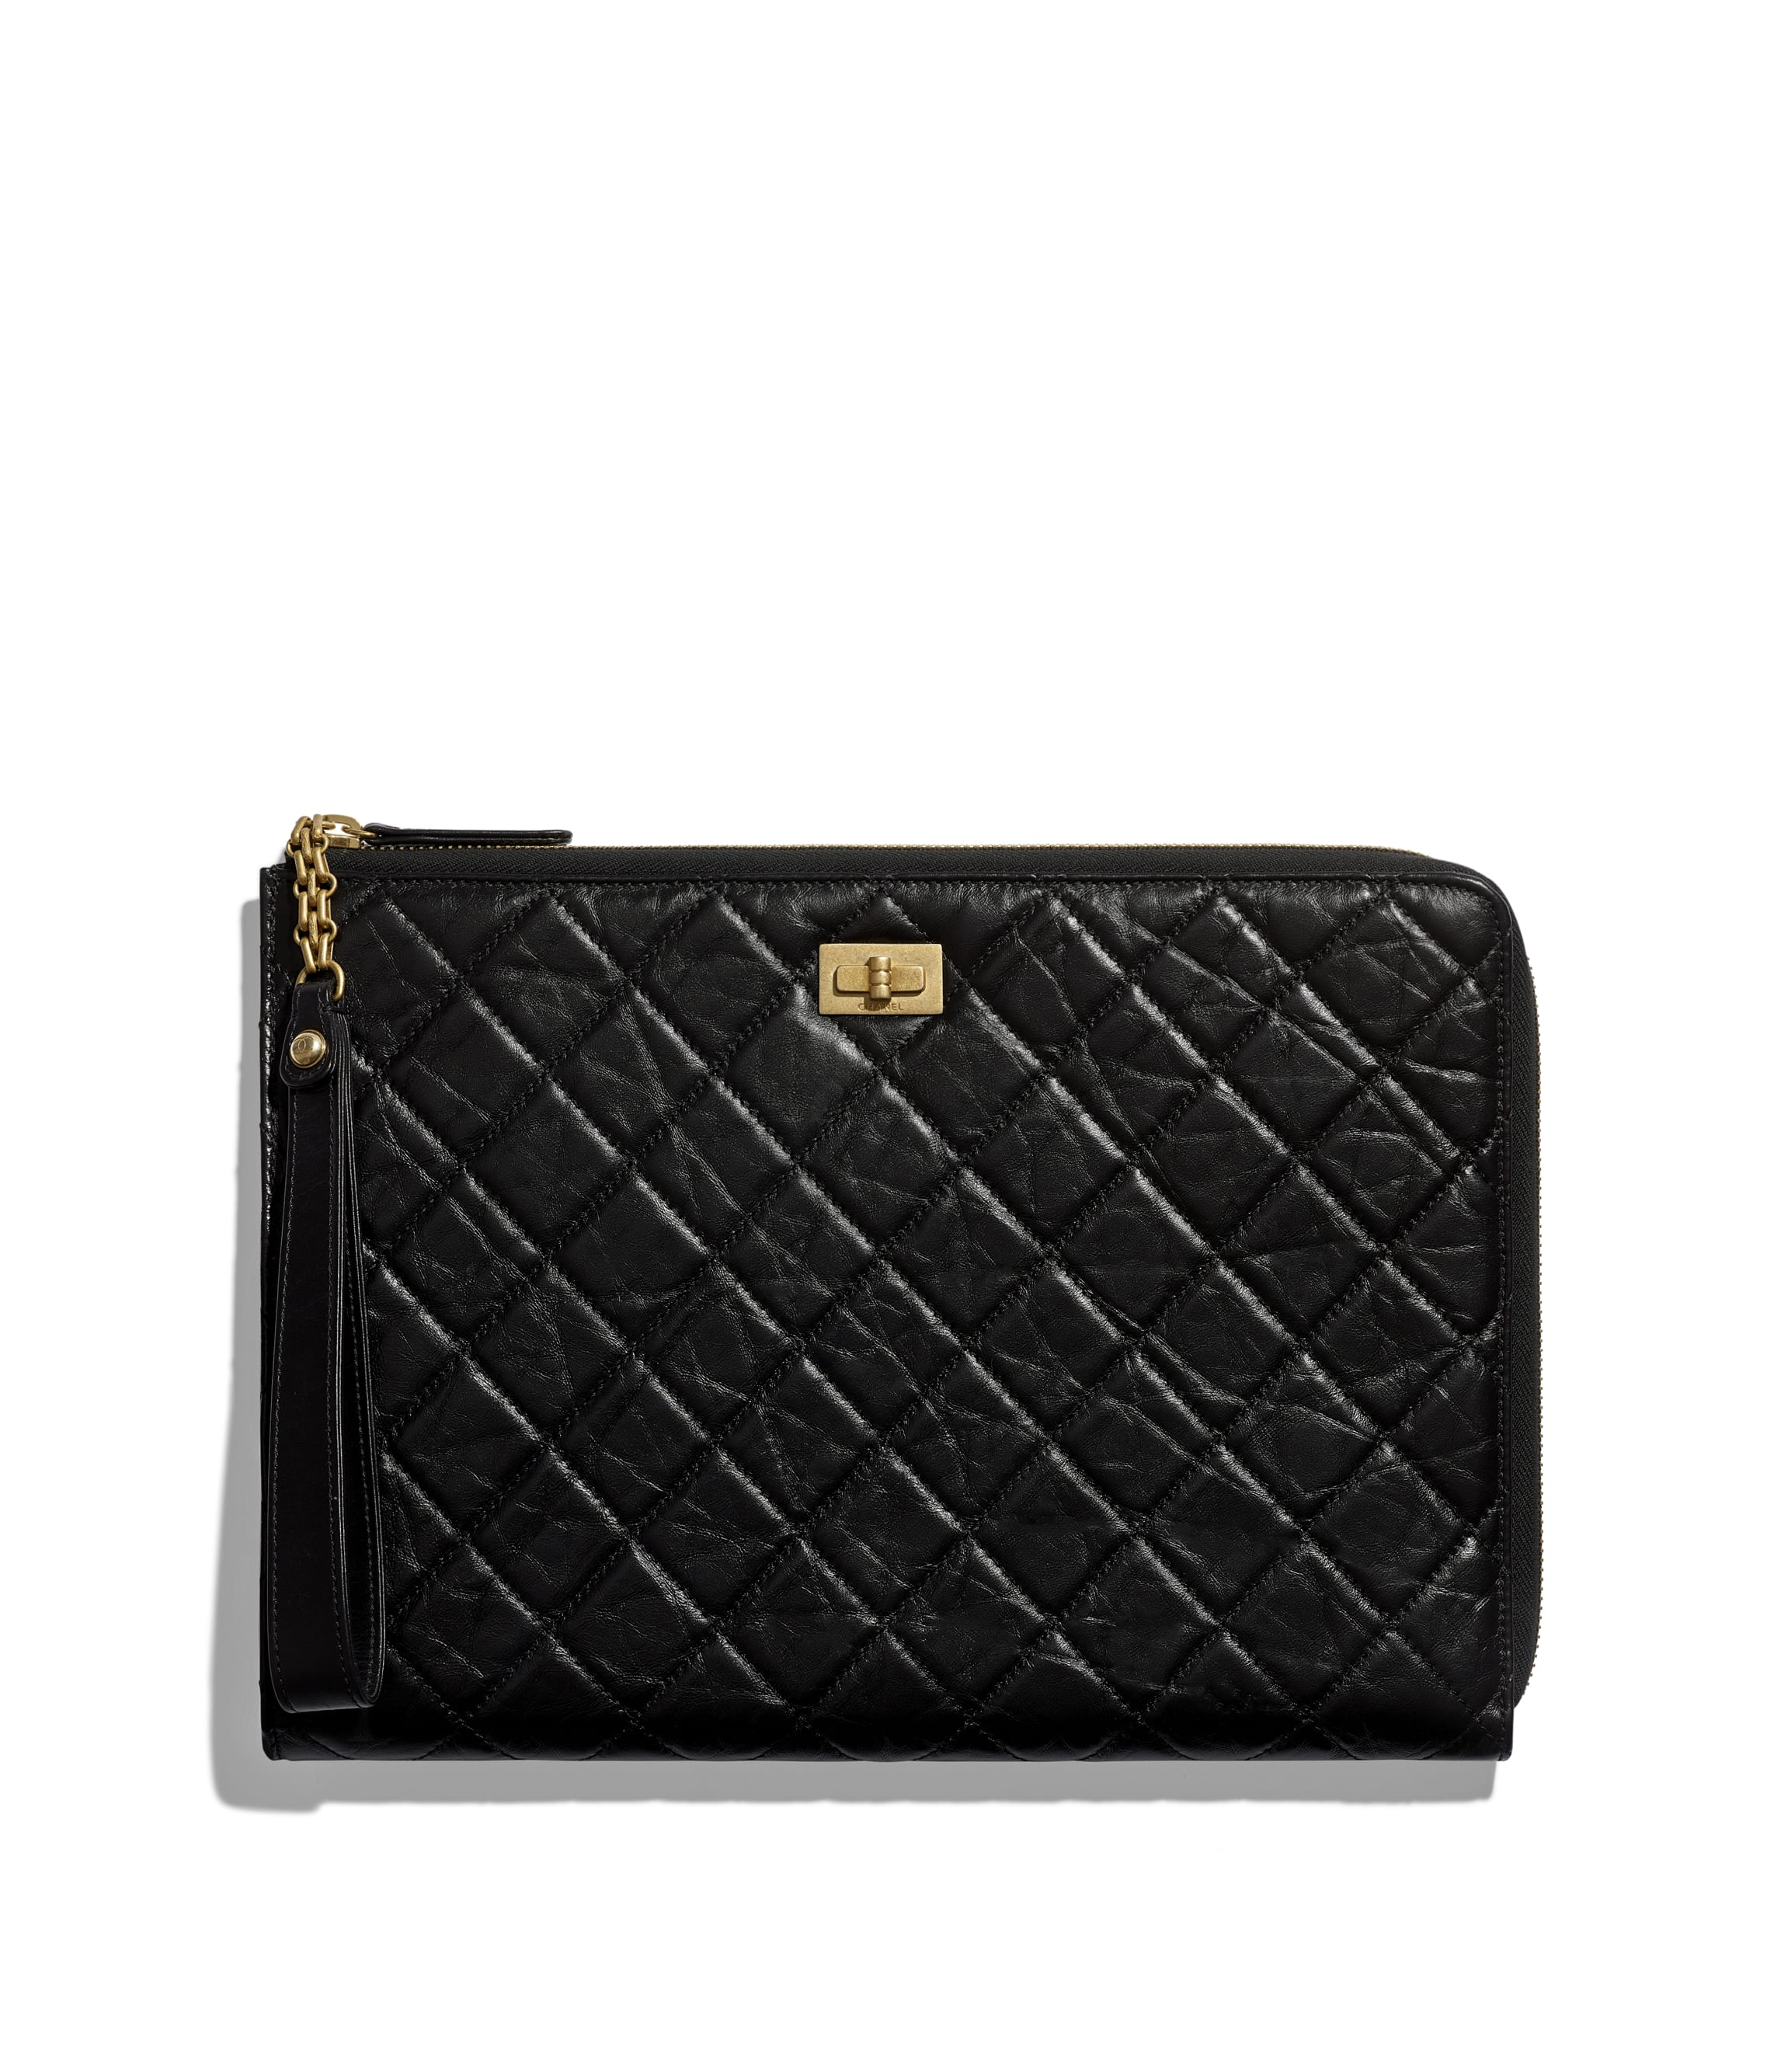 Petite maroquinerie - CHANEL bbcfb713321